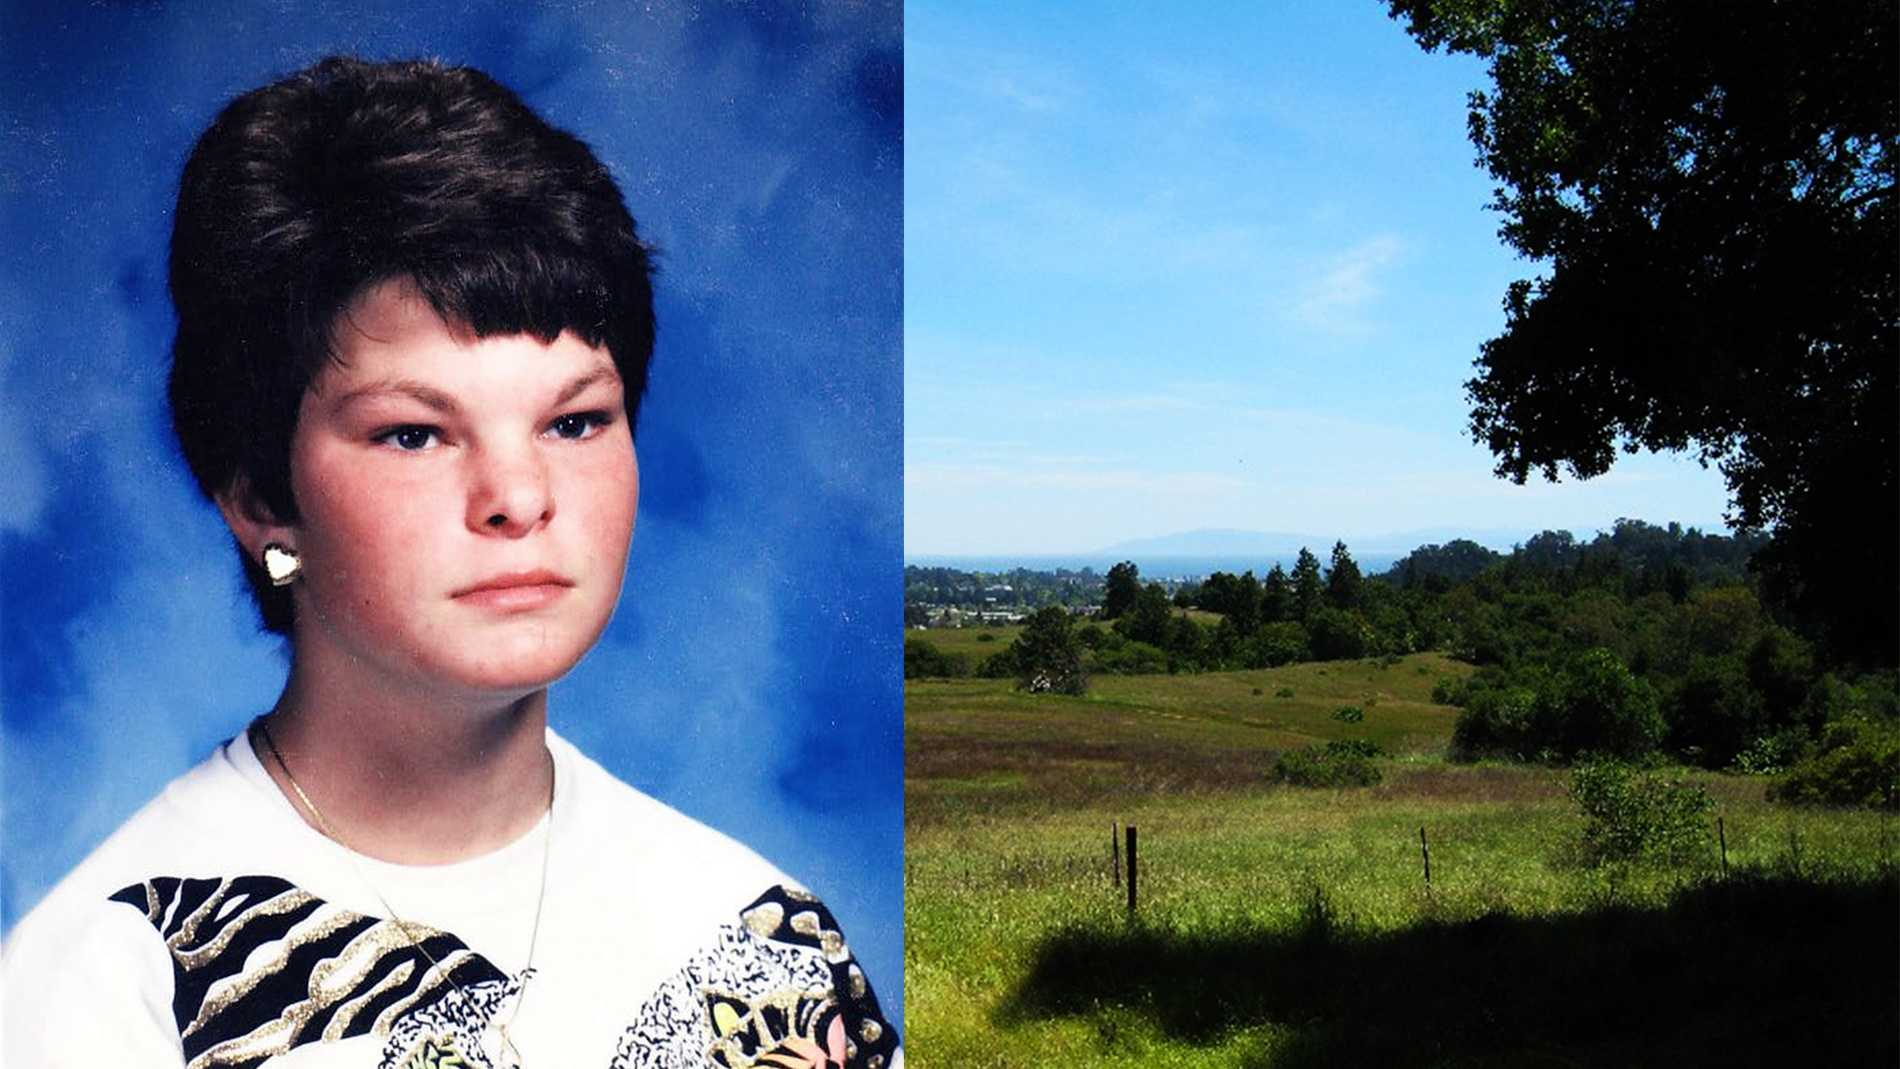 Kori Joann Lamaster, left, is seen in a high school yearbook photo. Her body was found in Santa Cruz's Pogonip Park, right.